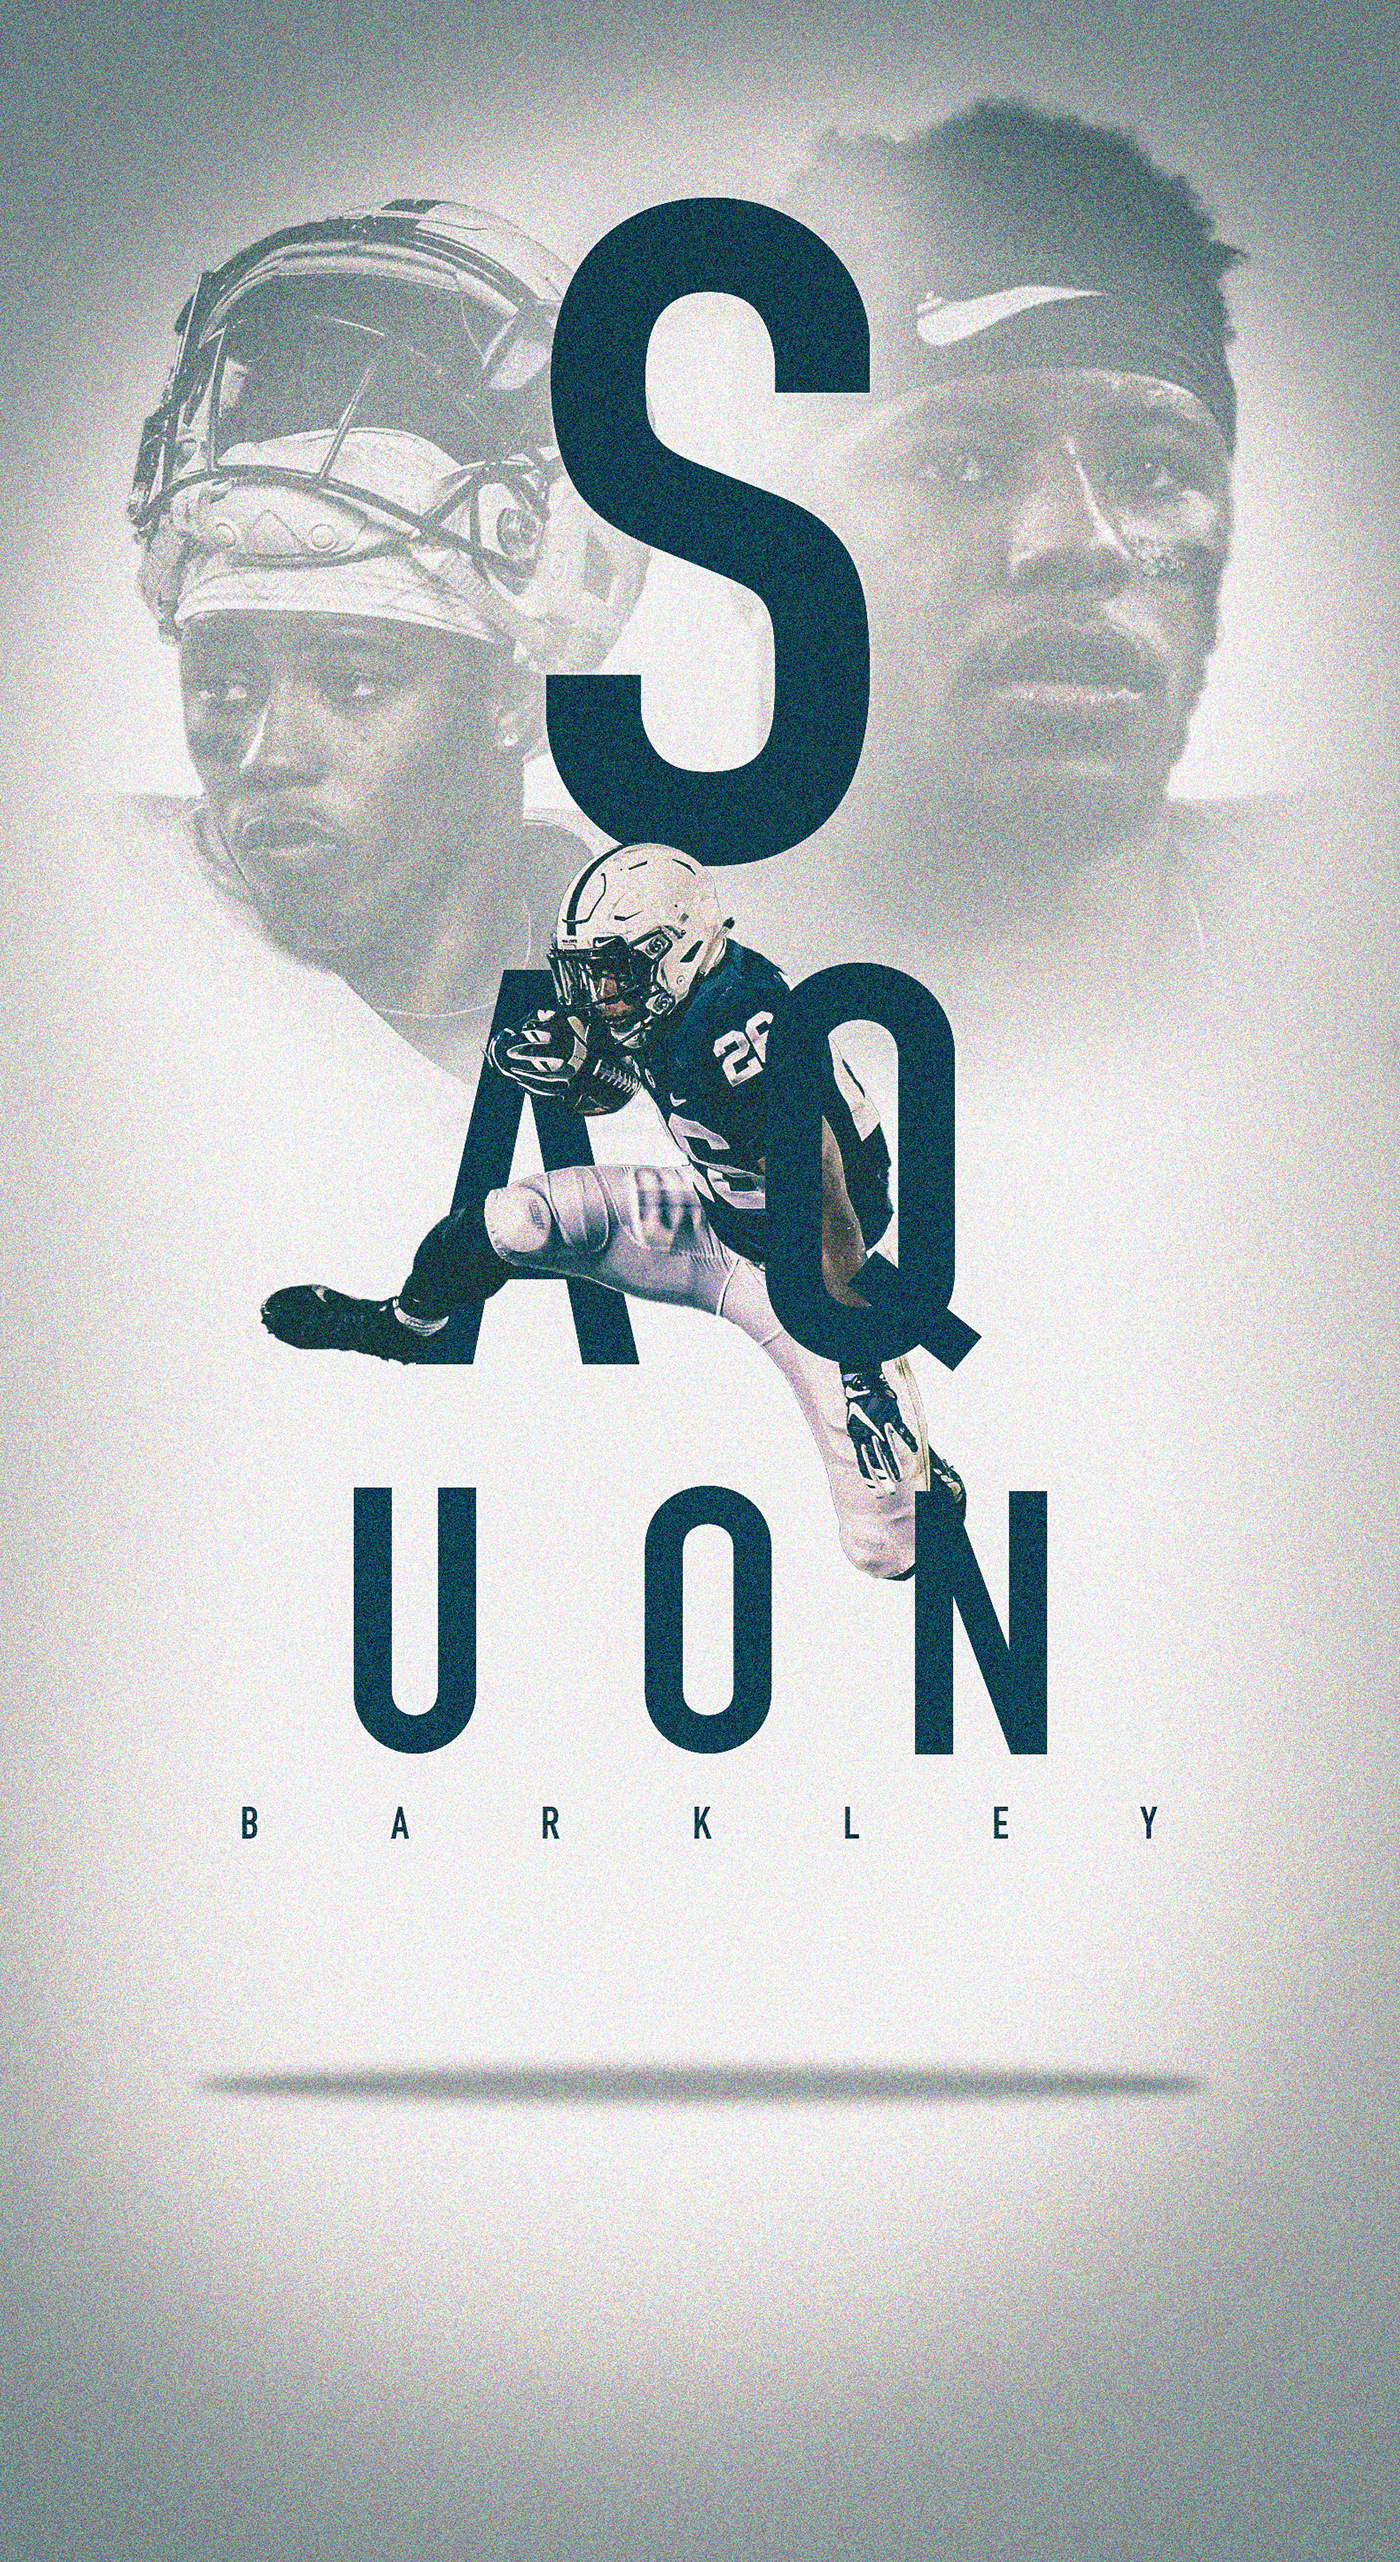 Saquon Barkley iOS Wallpaper on Behance Nfl football